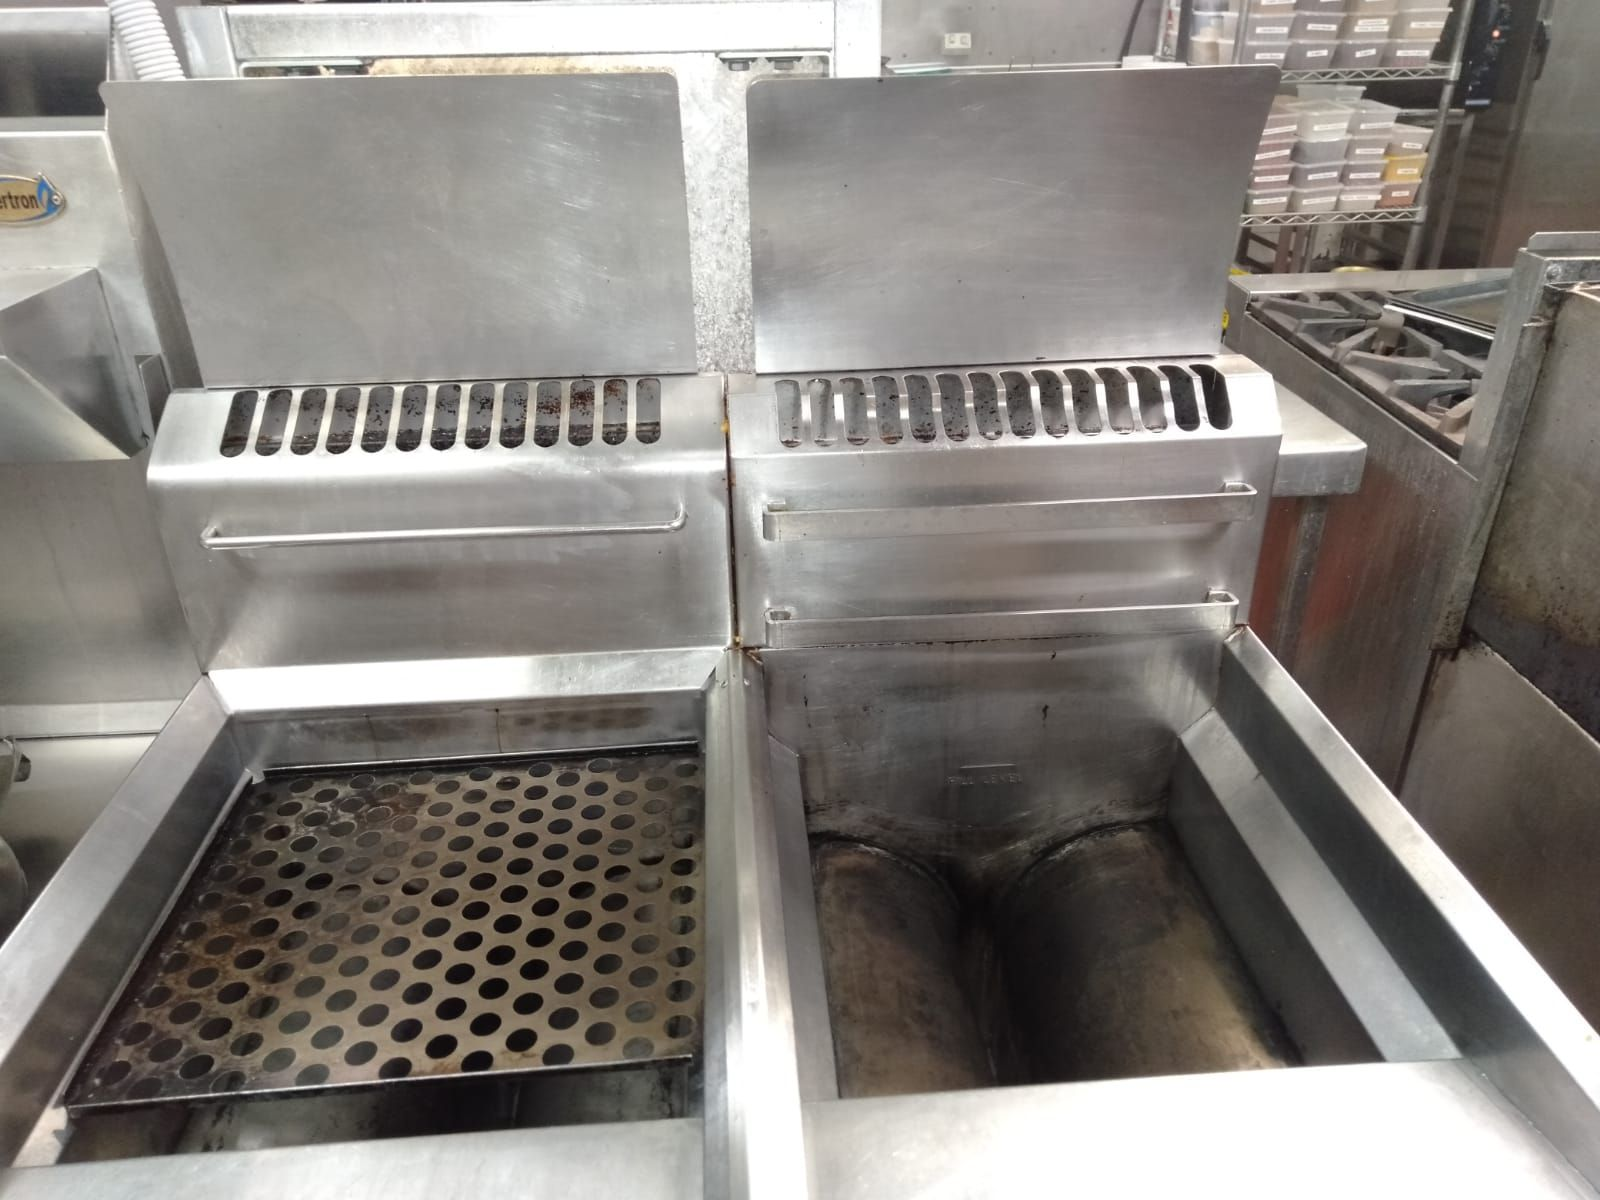 Commercial Kitchen Equipment Cleaning Kitchen equipment